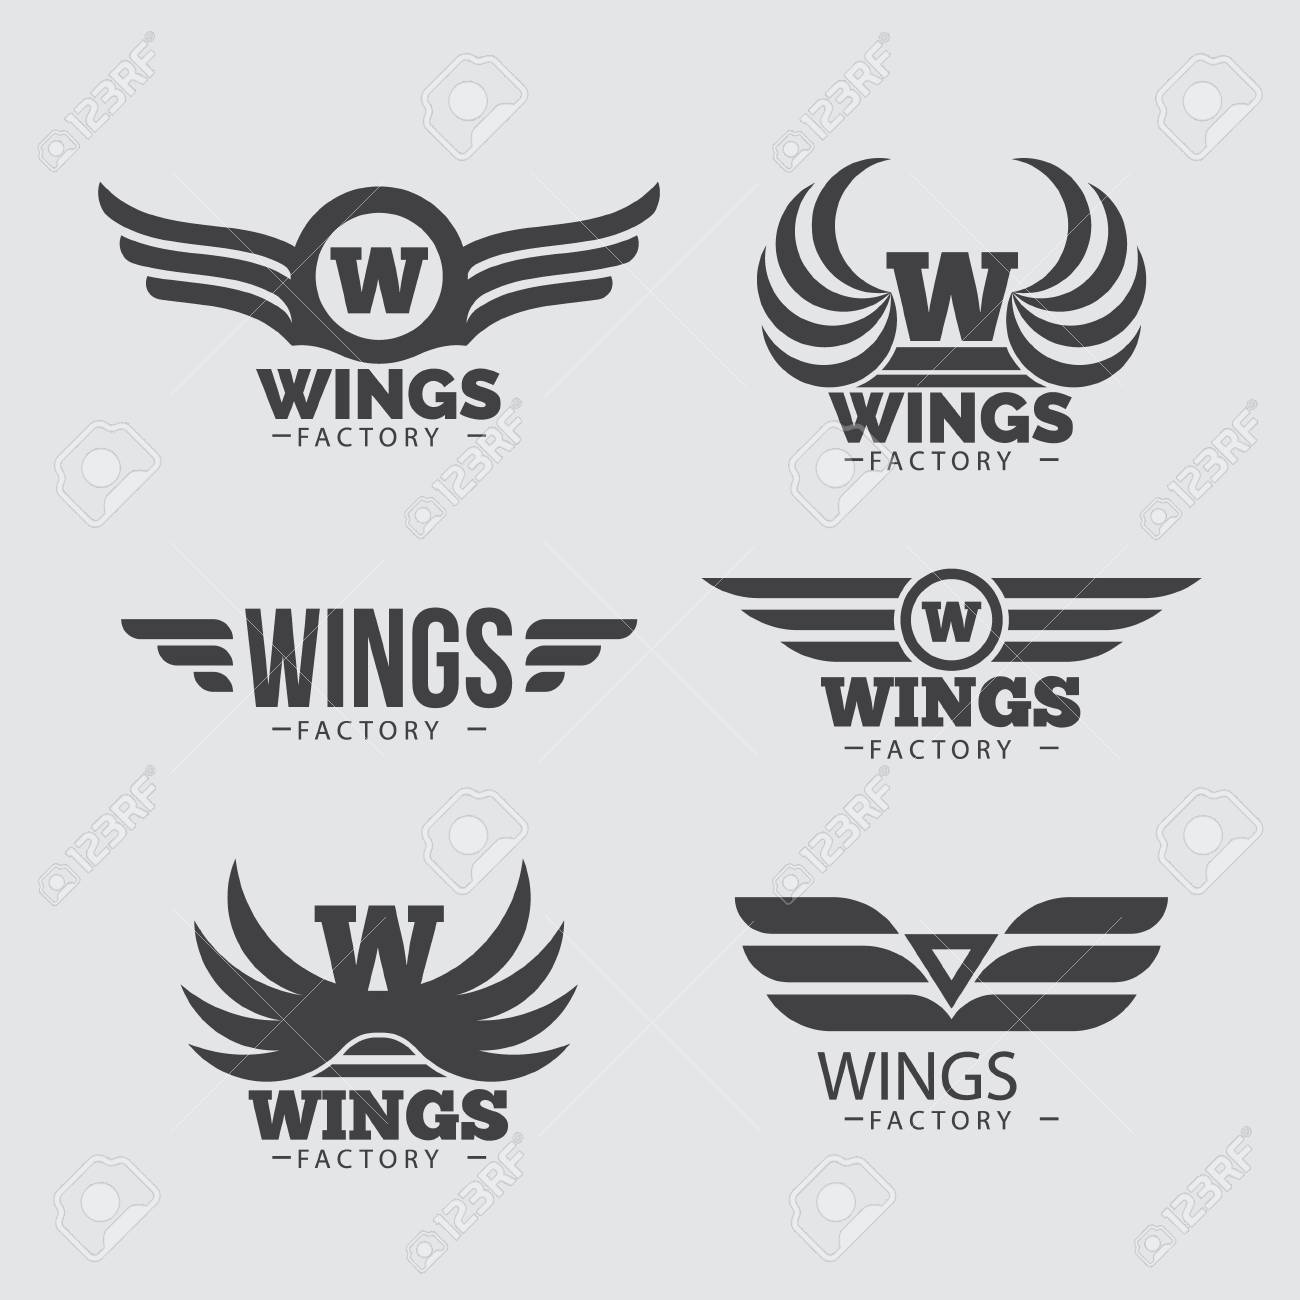 vector wings logo set winged logo company and icon wing flying royalty free cliparts vectors and stock illustration image 119690469 vector wings logo set winged logo company and icon wing flying